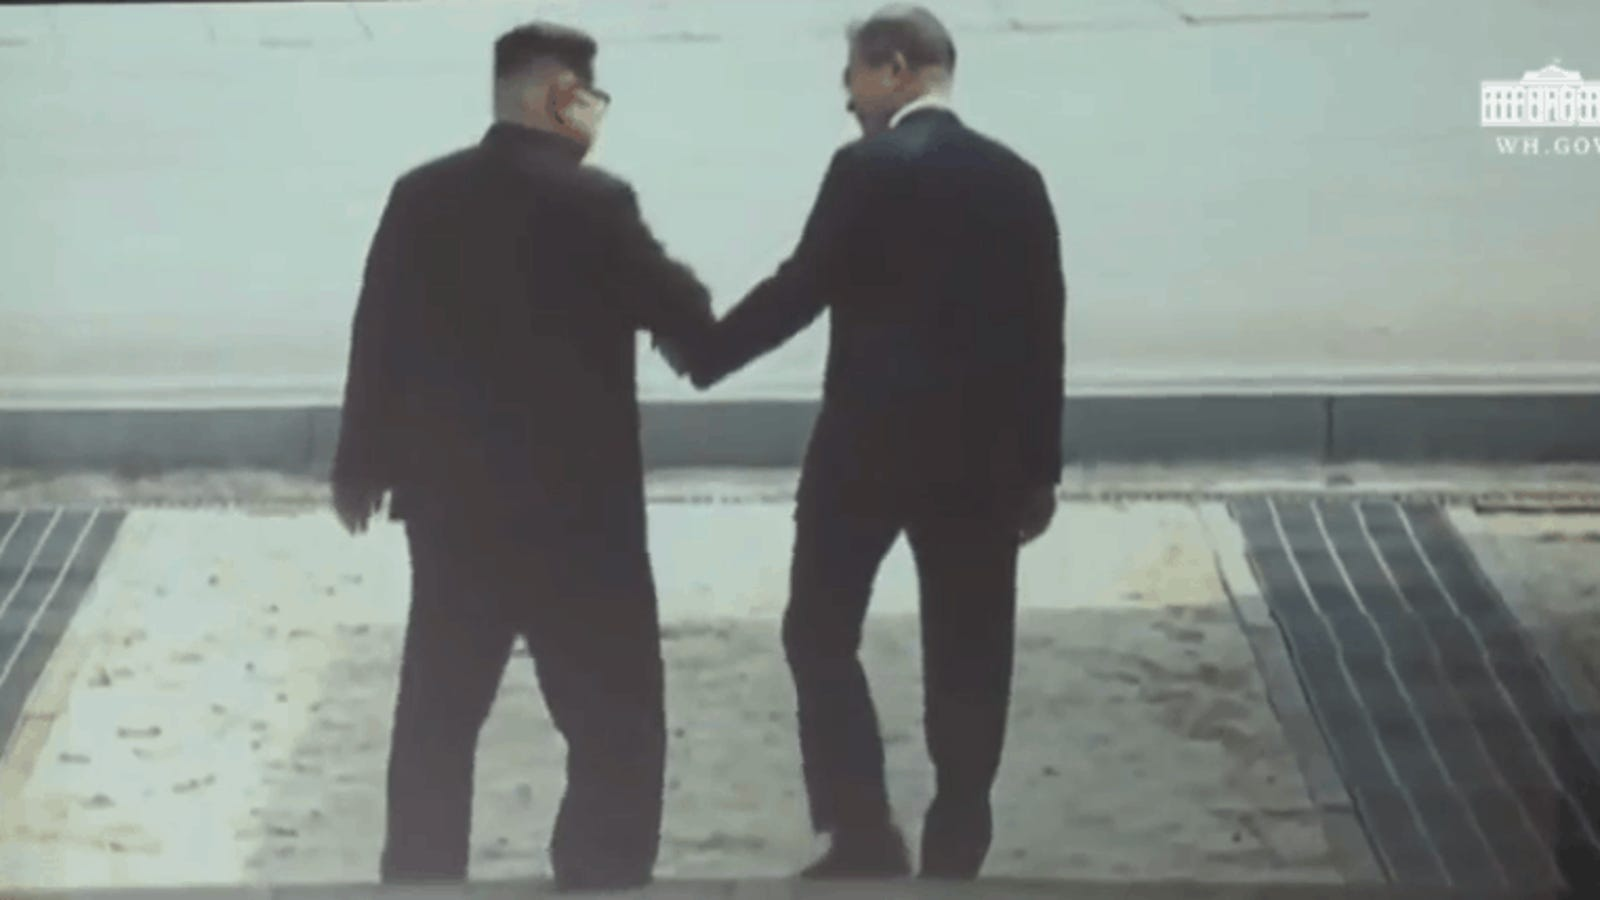 President Trump Made a Fake Movie Trailer for Kim Jong Un with the Two Leaders as Heroes